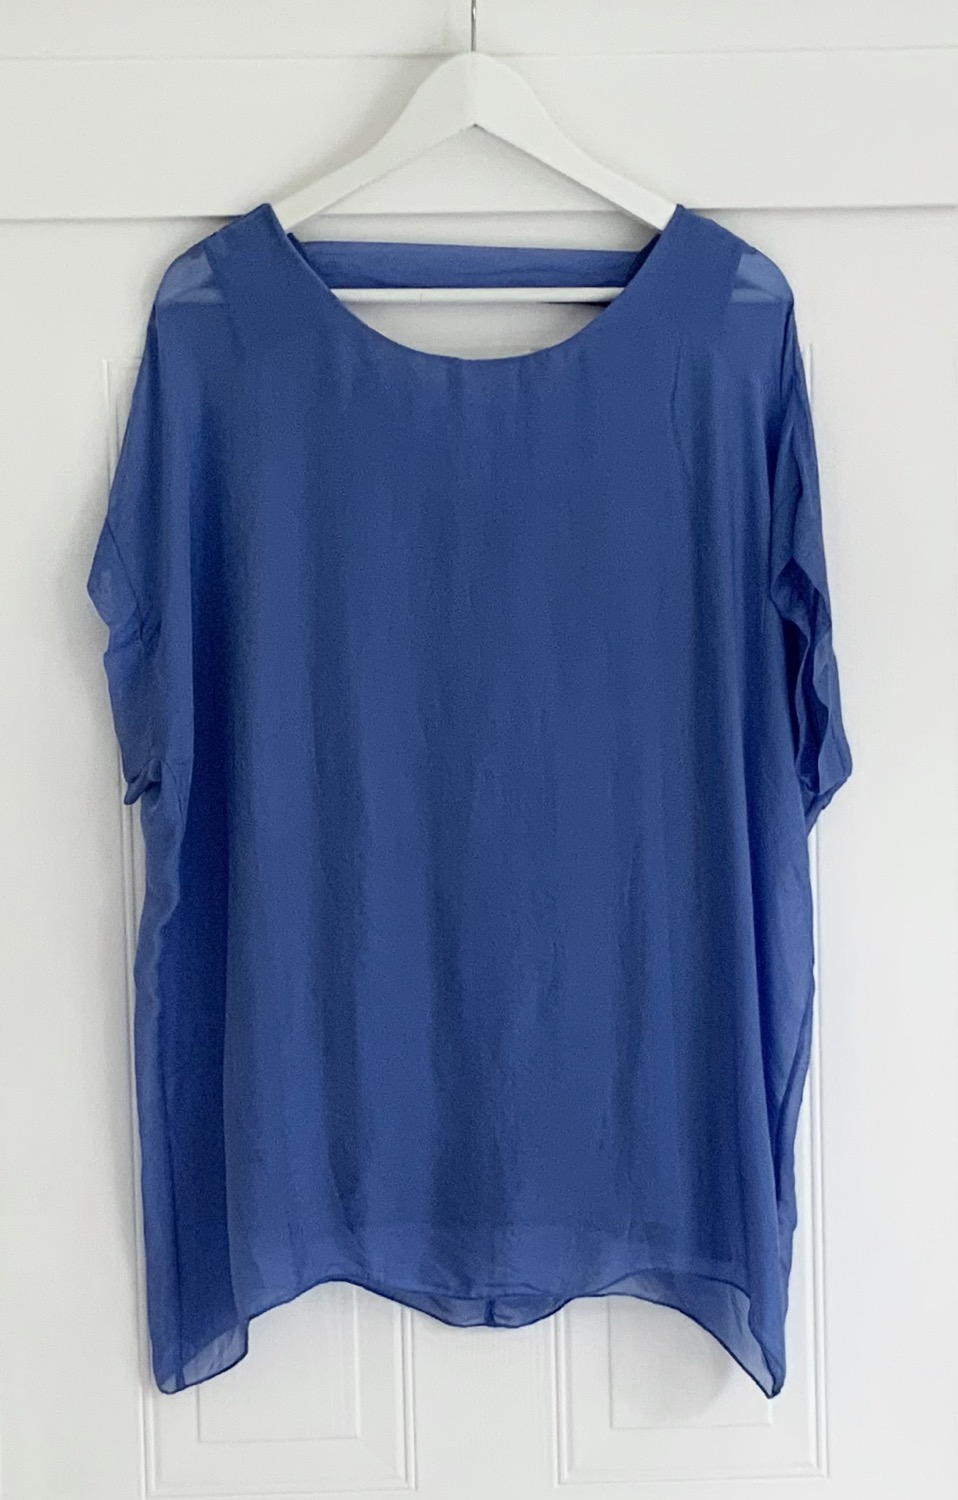 Silk top lined